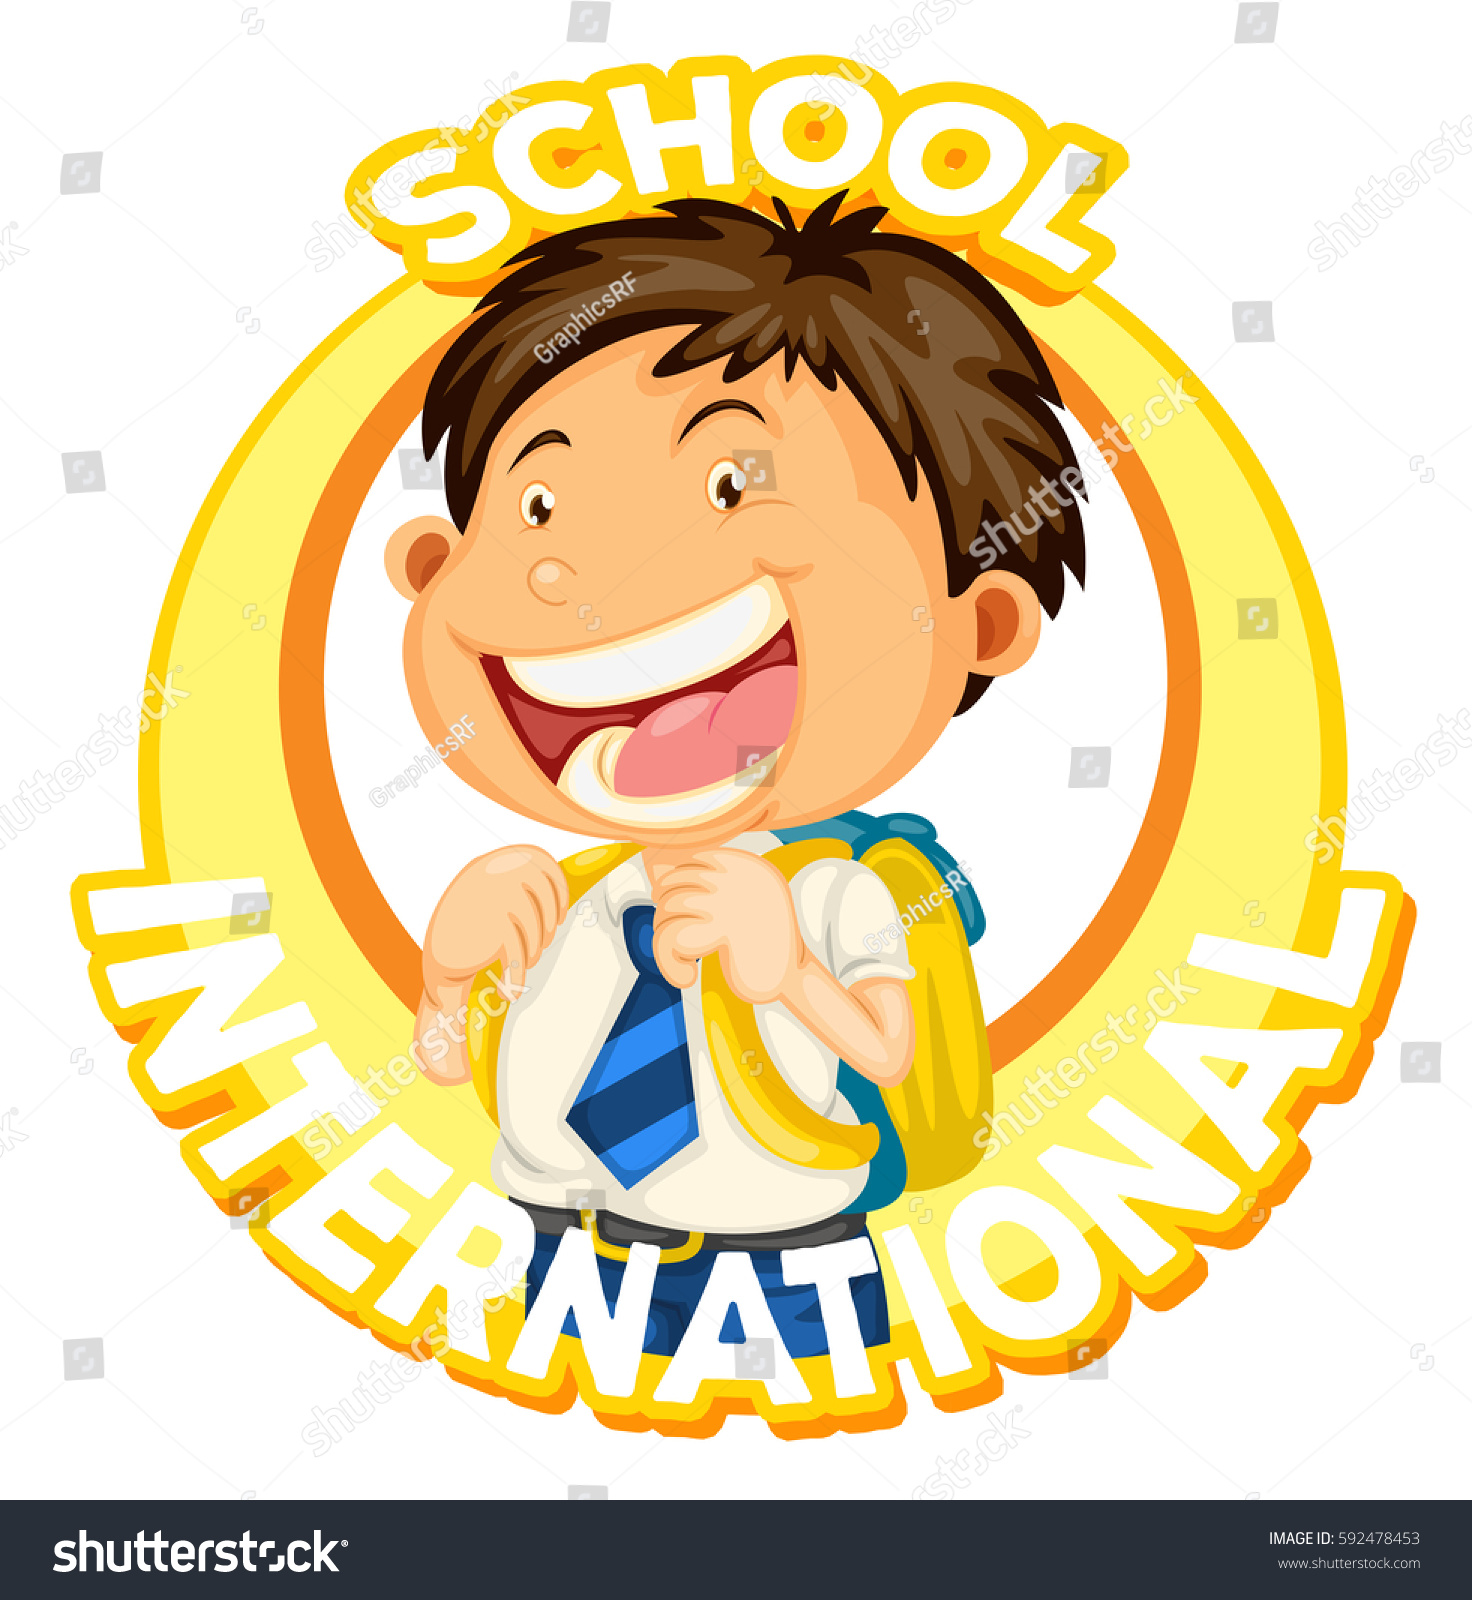 boy student on school logo design stock vector (royalty free